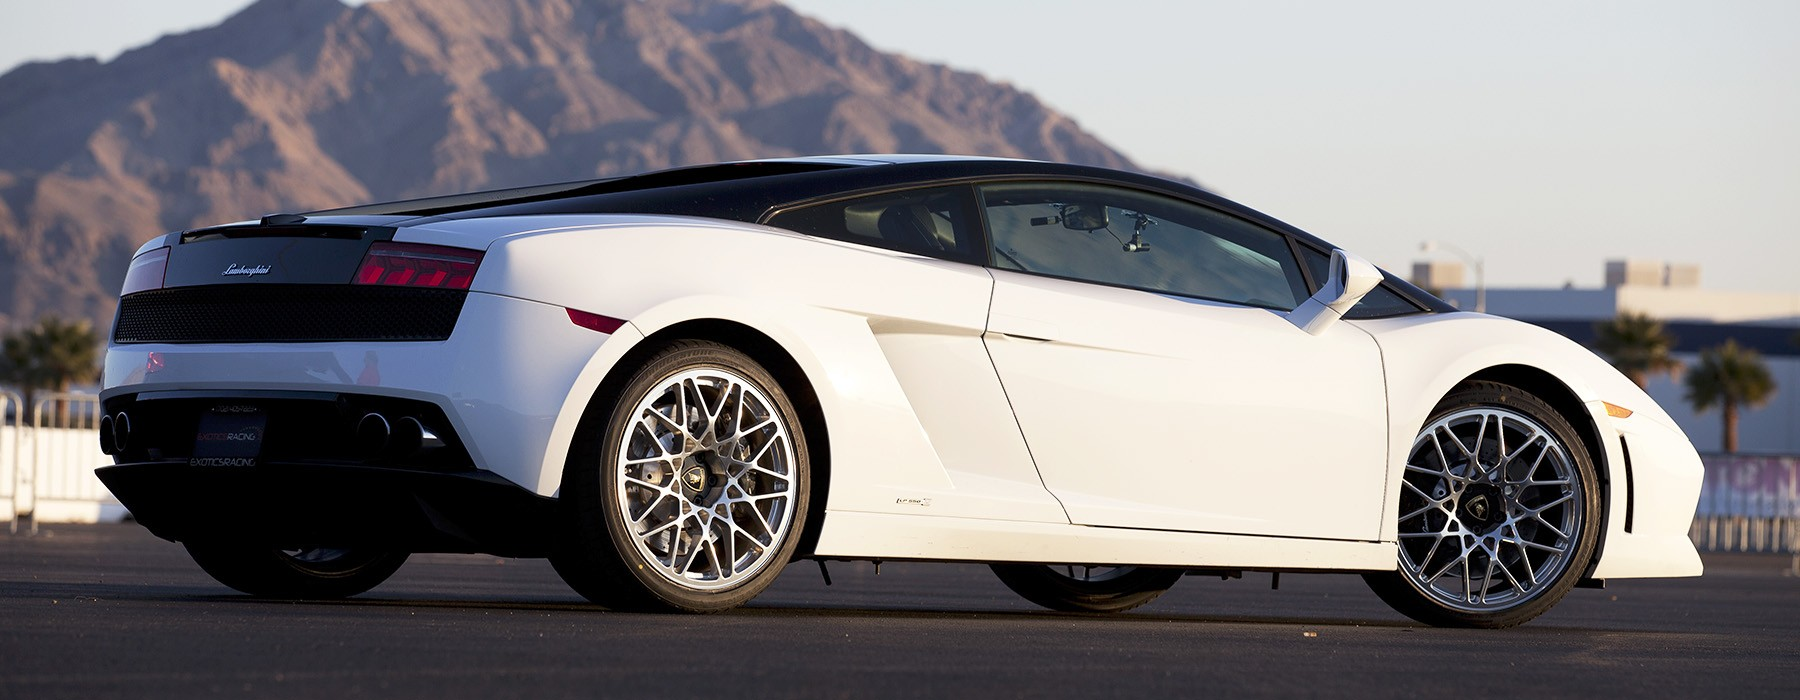 Exotics Racing Las Vegas Los Angeles Supercar Driving Experience